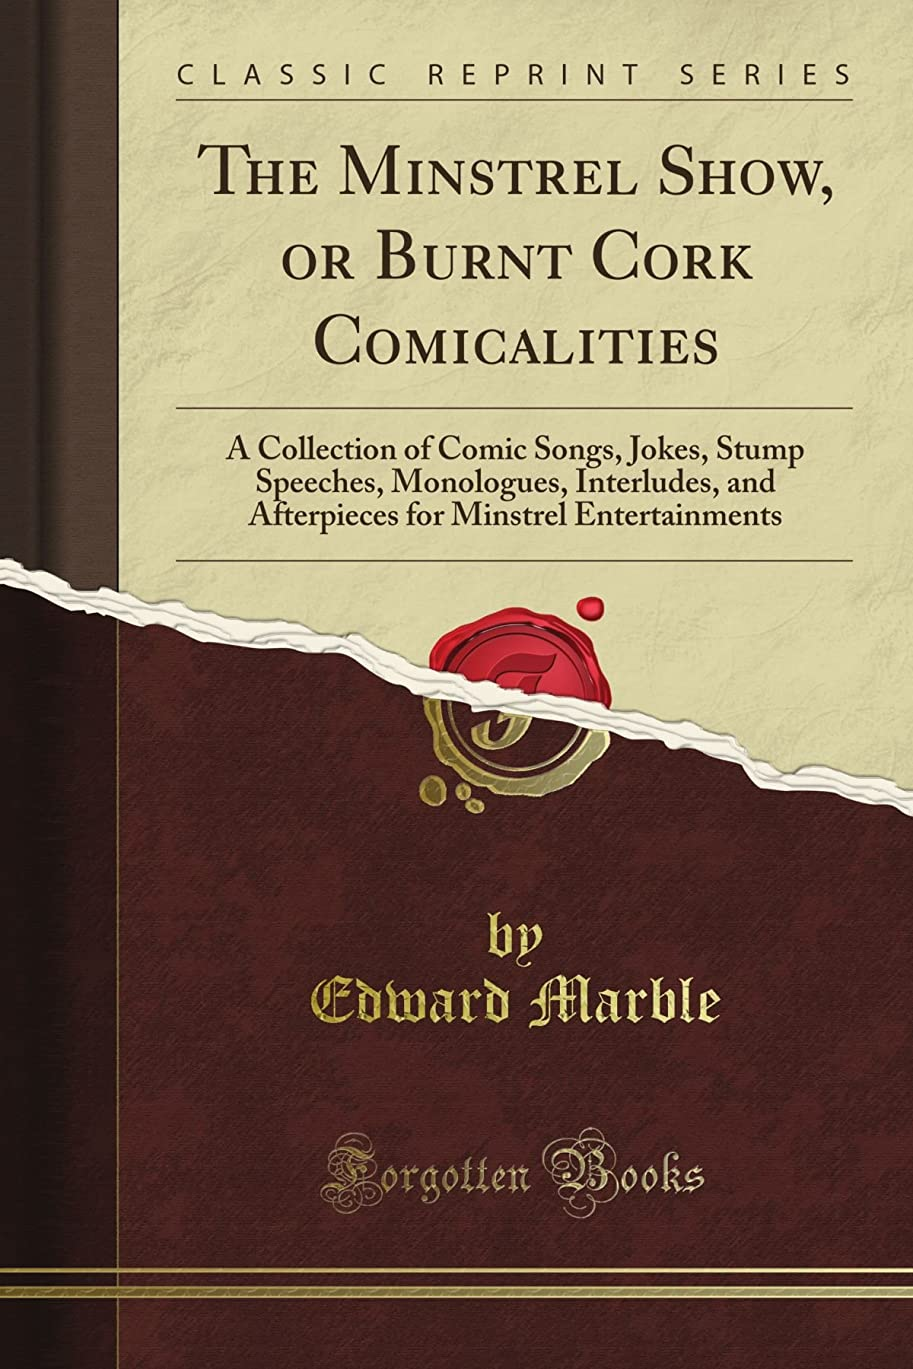 犯すエスカレーター大人The Minstrel Show, or Burnt Cork Comicalities: A Collection of Comic Songs, Jokes, Stump Speeches, Monologues, Interludes, and Afterpieces for Minstrel Entertainments (Classic Reprint)